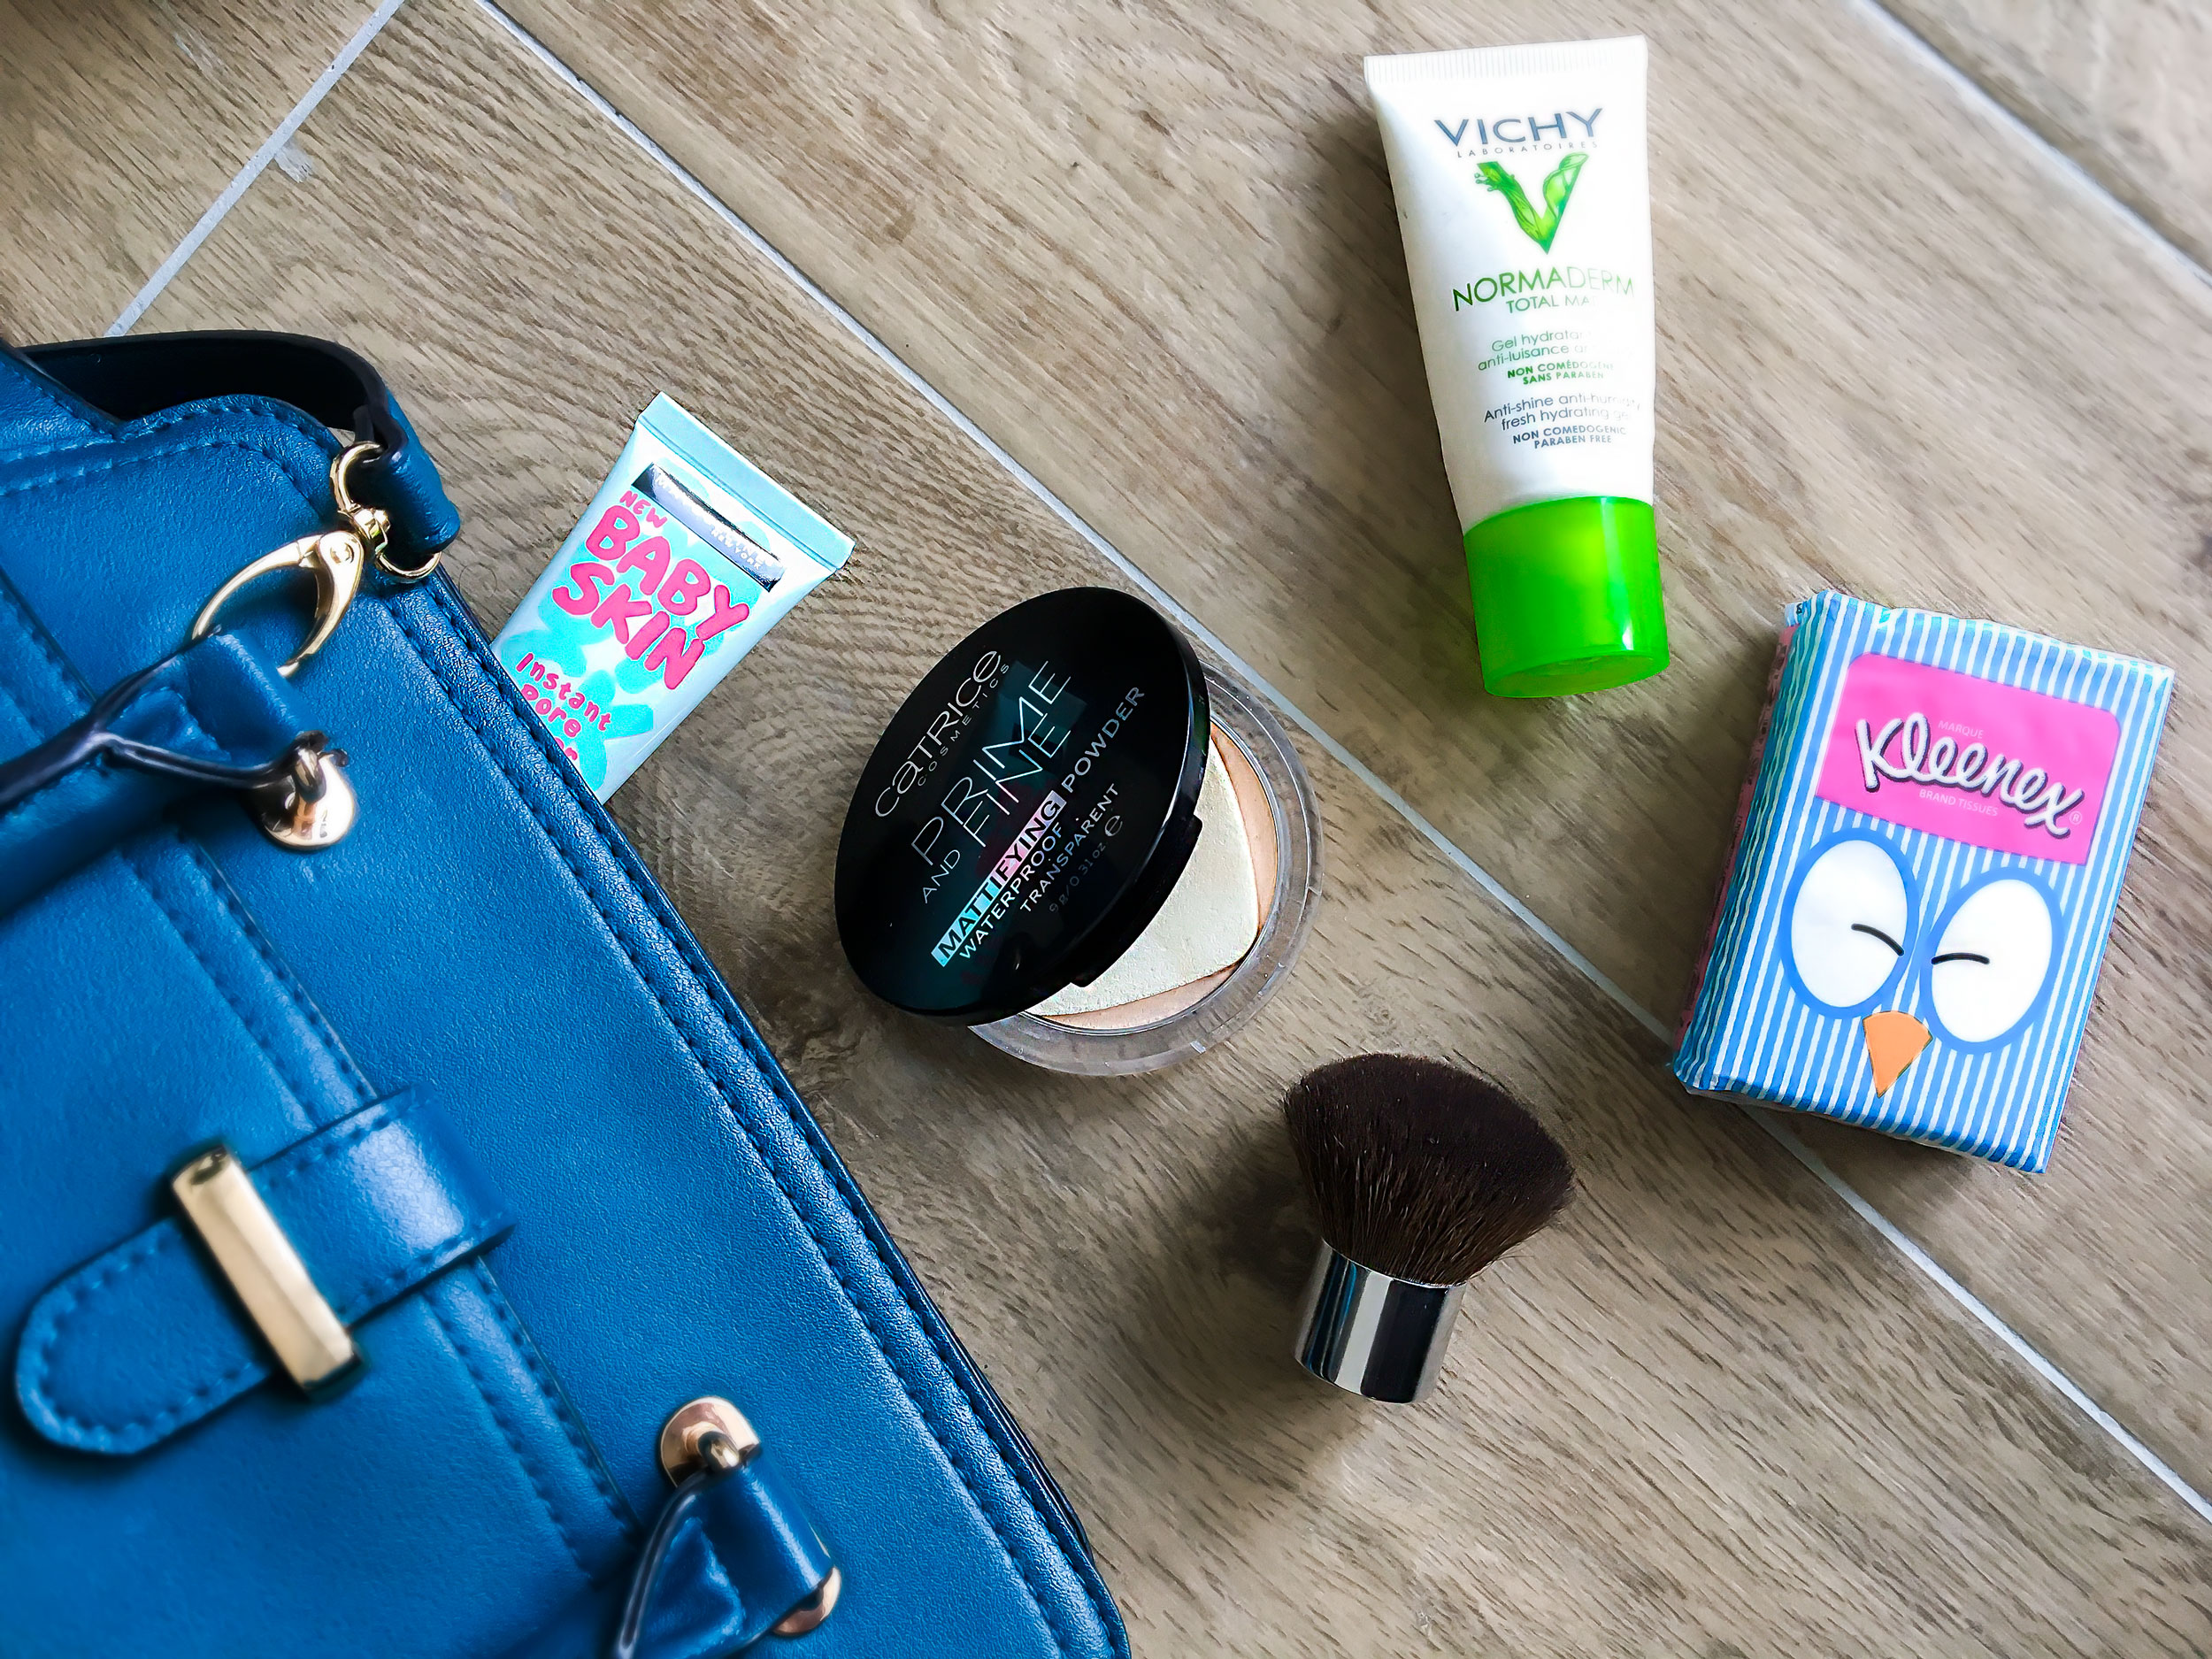 Mattifying makeup products in my bag